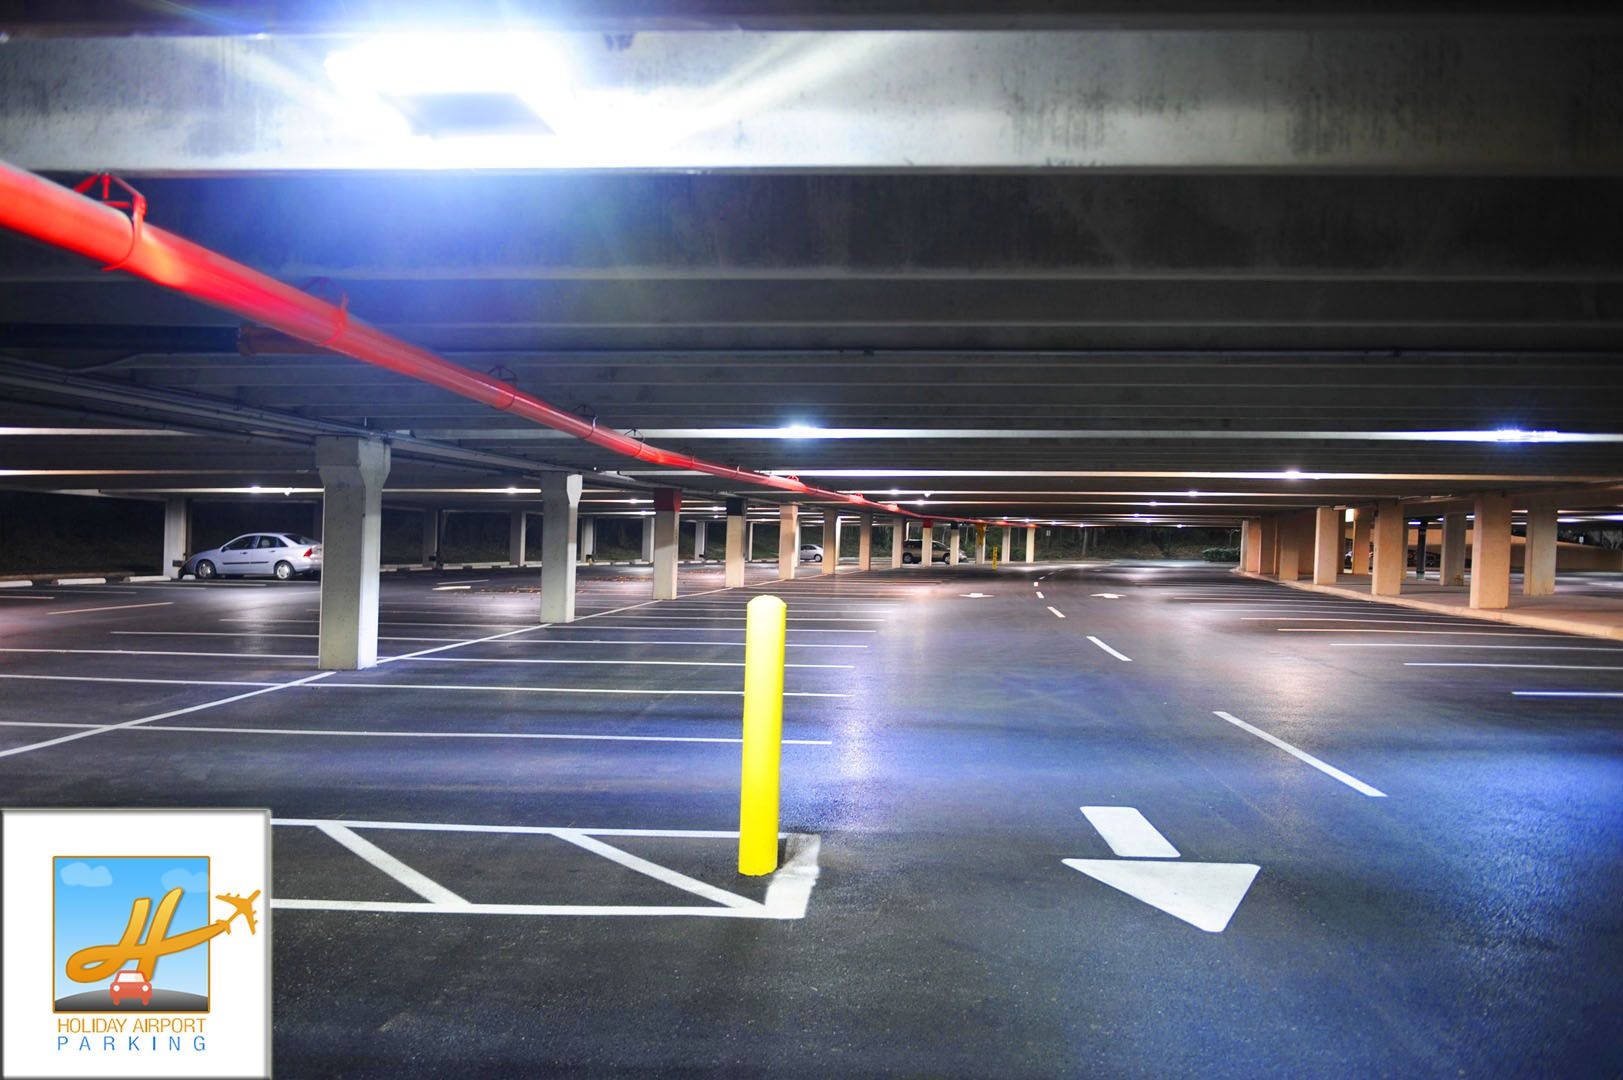 Do Follow These Entire Car Parking Guides Before Going To Park At